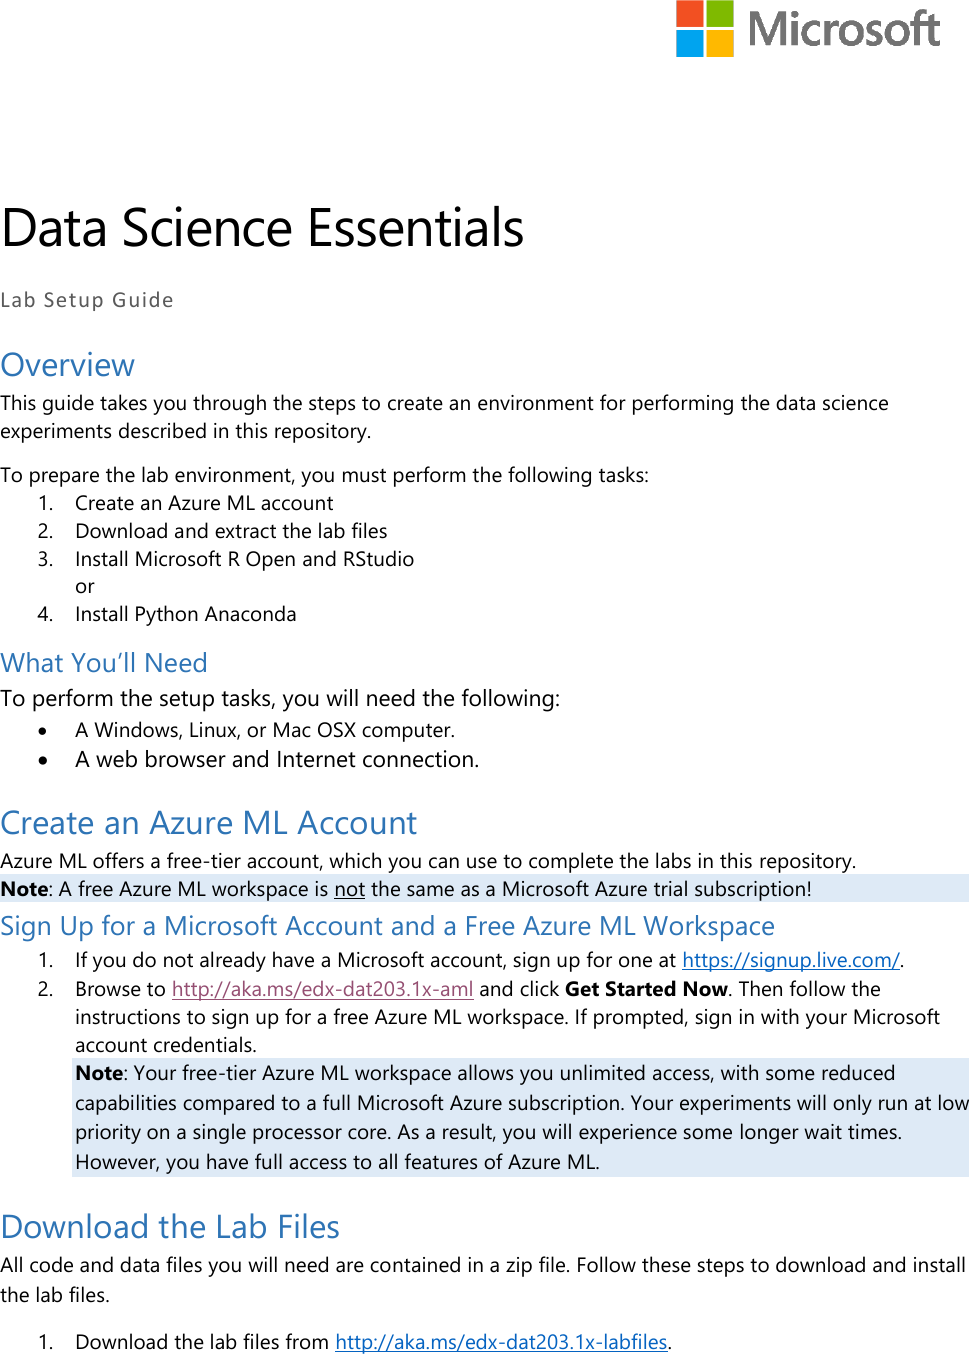 Microsoft Learning Experiences DAT203 1x Setup Guide